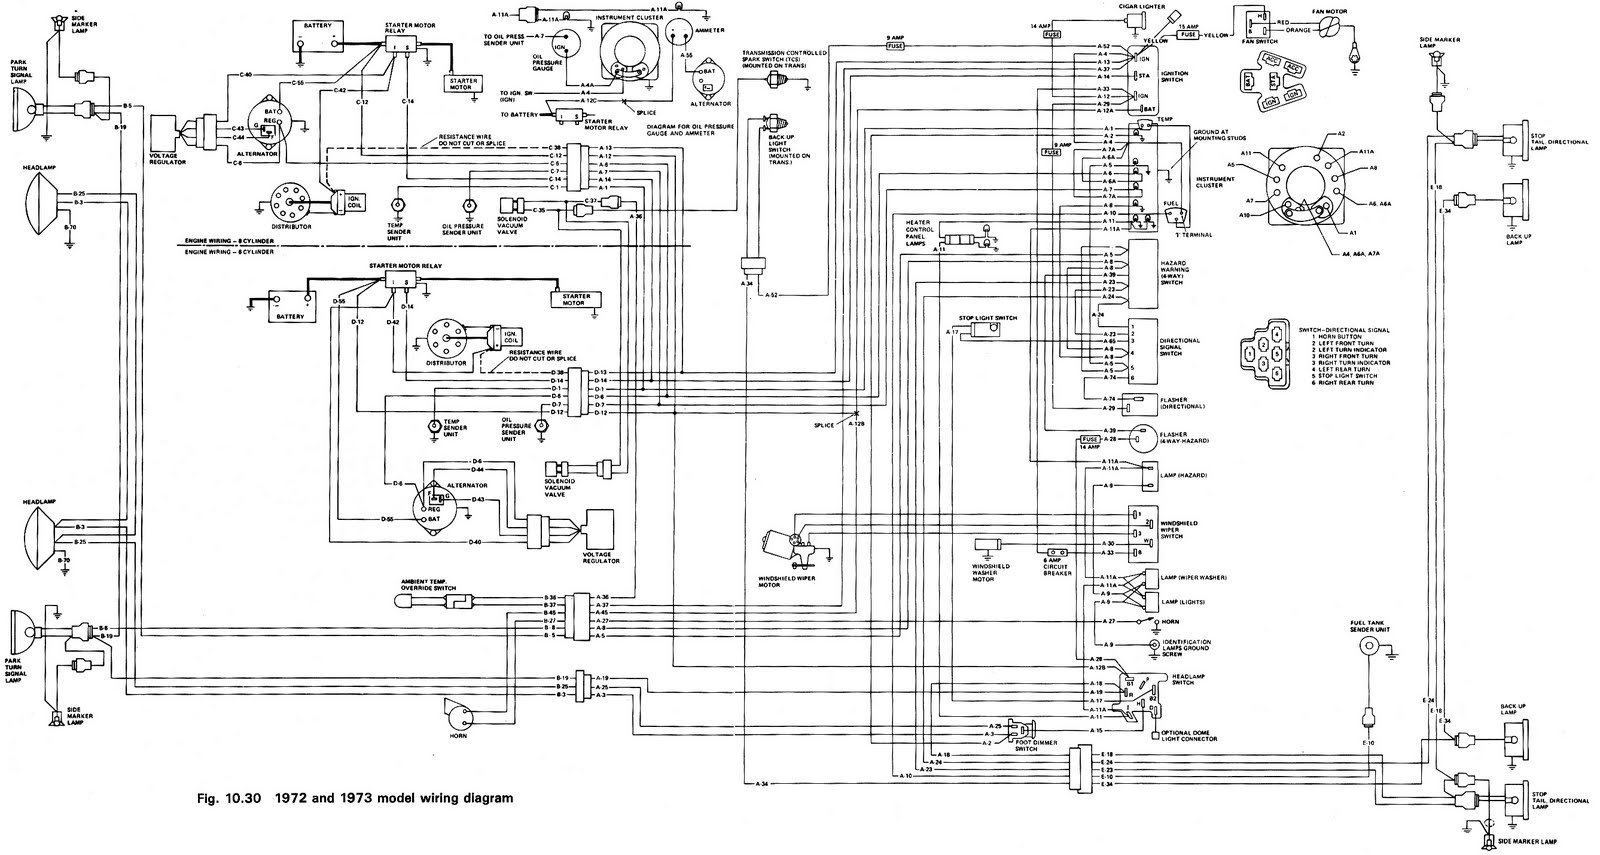 hight resolution of 1970 cj5 wiring diagram cj 1976 1977jpg 1959 cj5 wiring schematic jeep cj5 wiring schematic